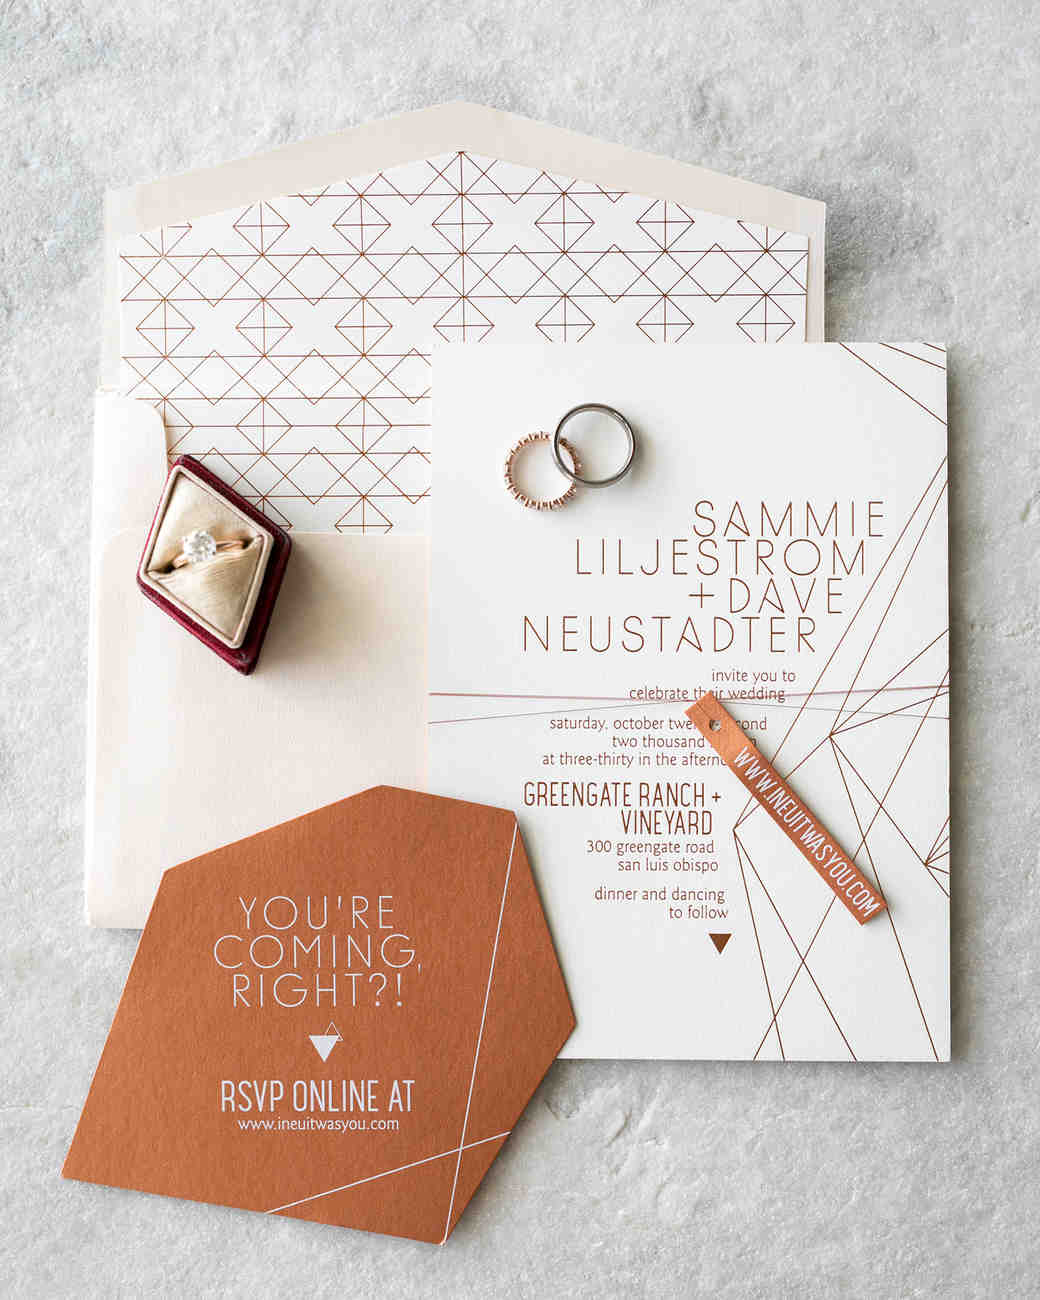 When Do I Send Out Wedding Invites: 28 Geometric Wedding Invitations With An Edge